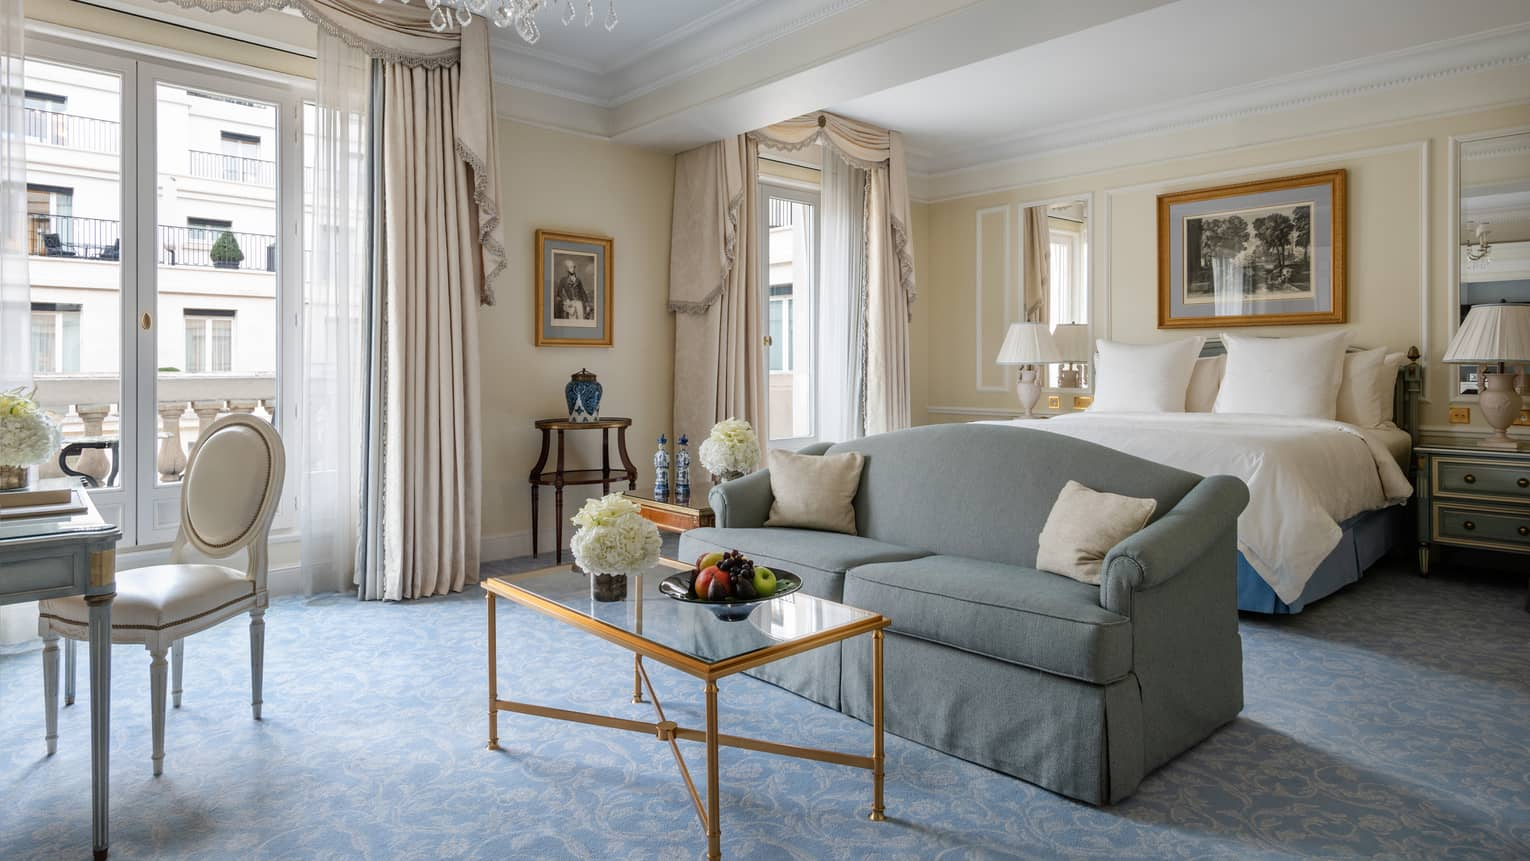 Premier room with queen bed, couch, coffee table, cream & teal Victorian accents, natural light